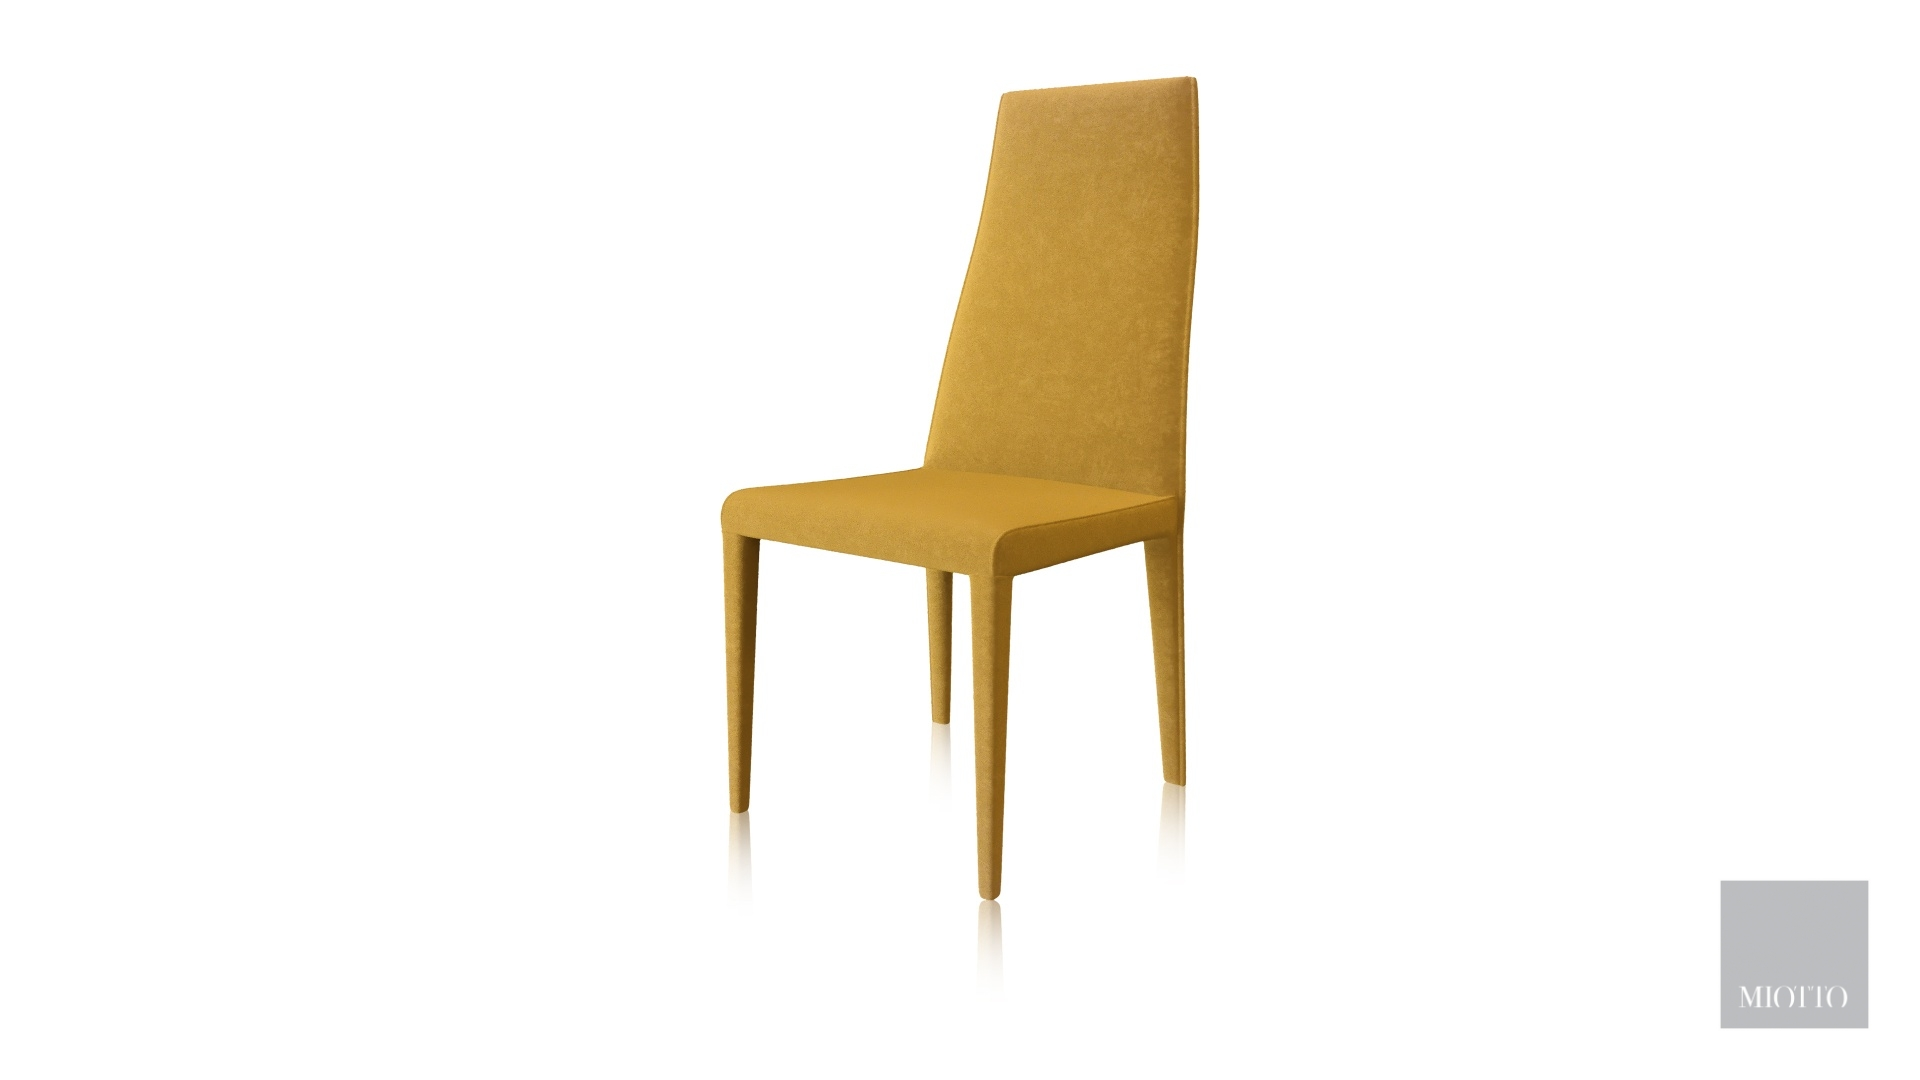 miotto_Rigano dining chair yellow miotto furniture